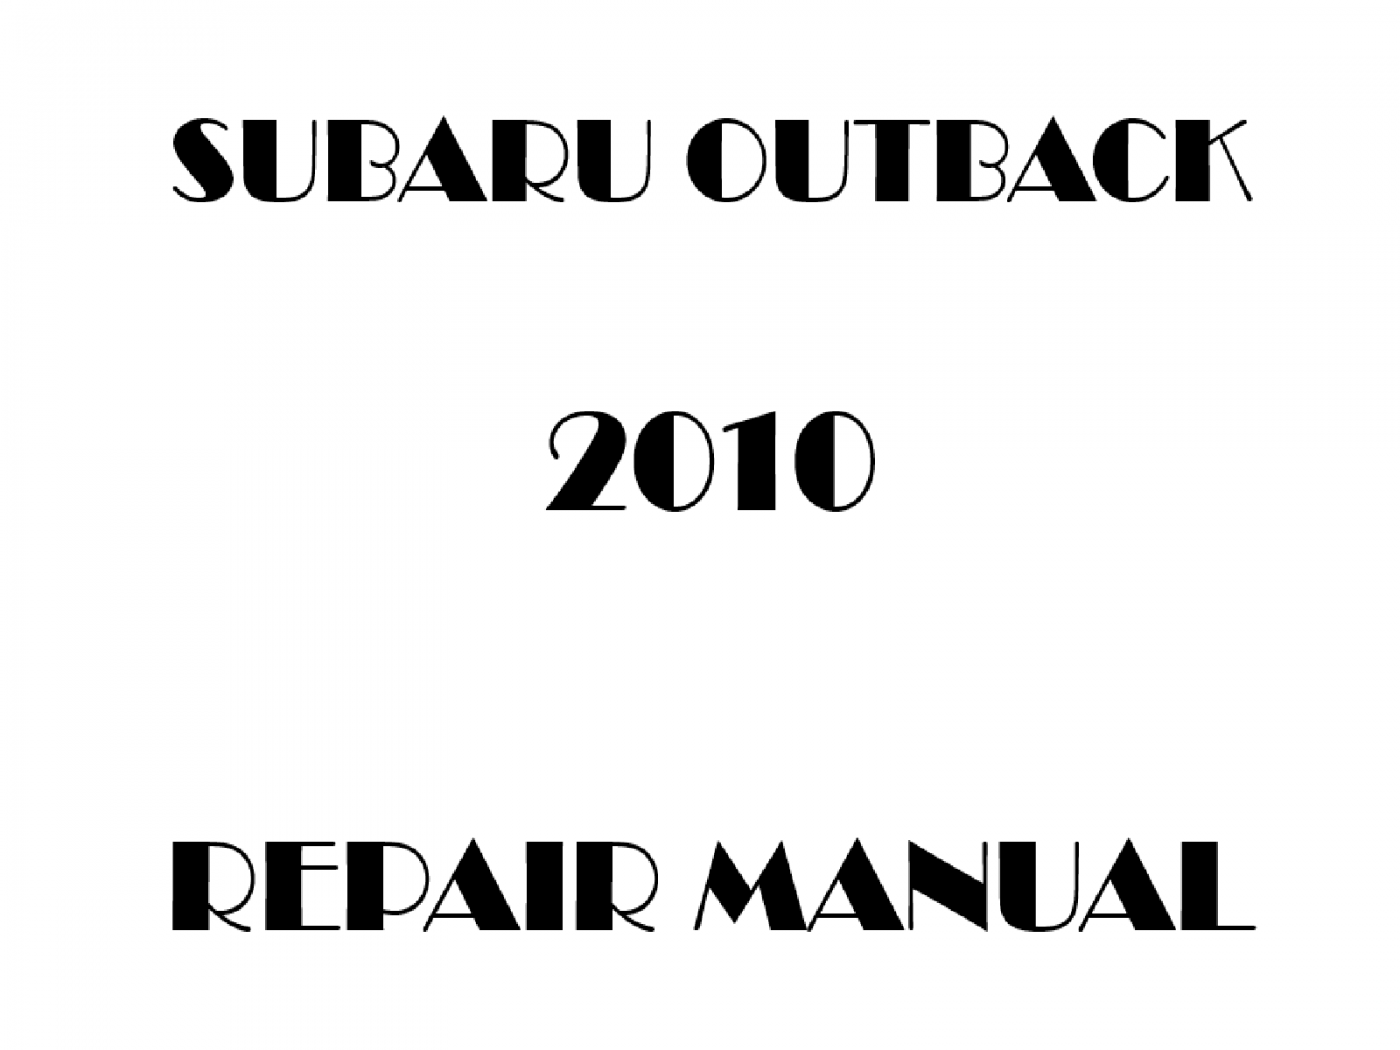 2010 Subaru Outback repair manual